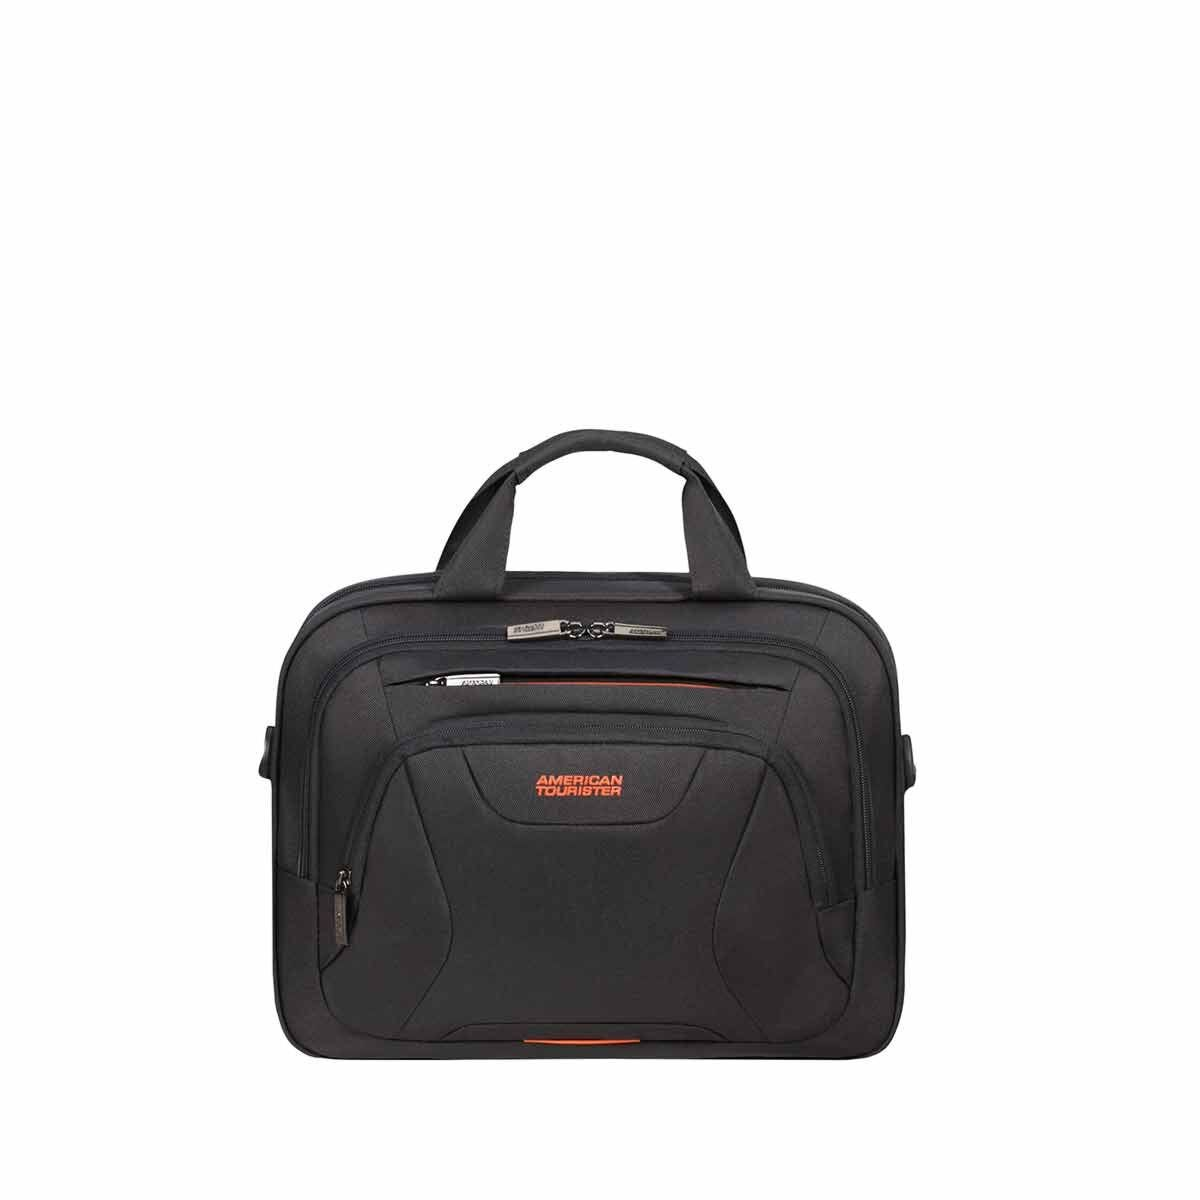 American Tourister Work Laptop Bag 13.3-14.1 Inch